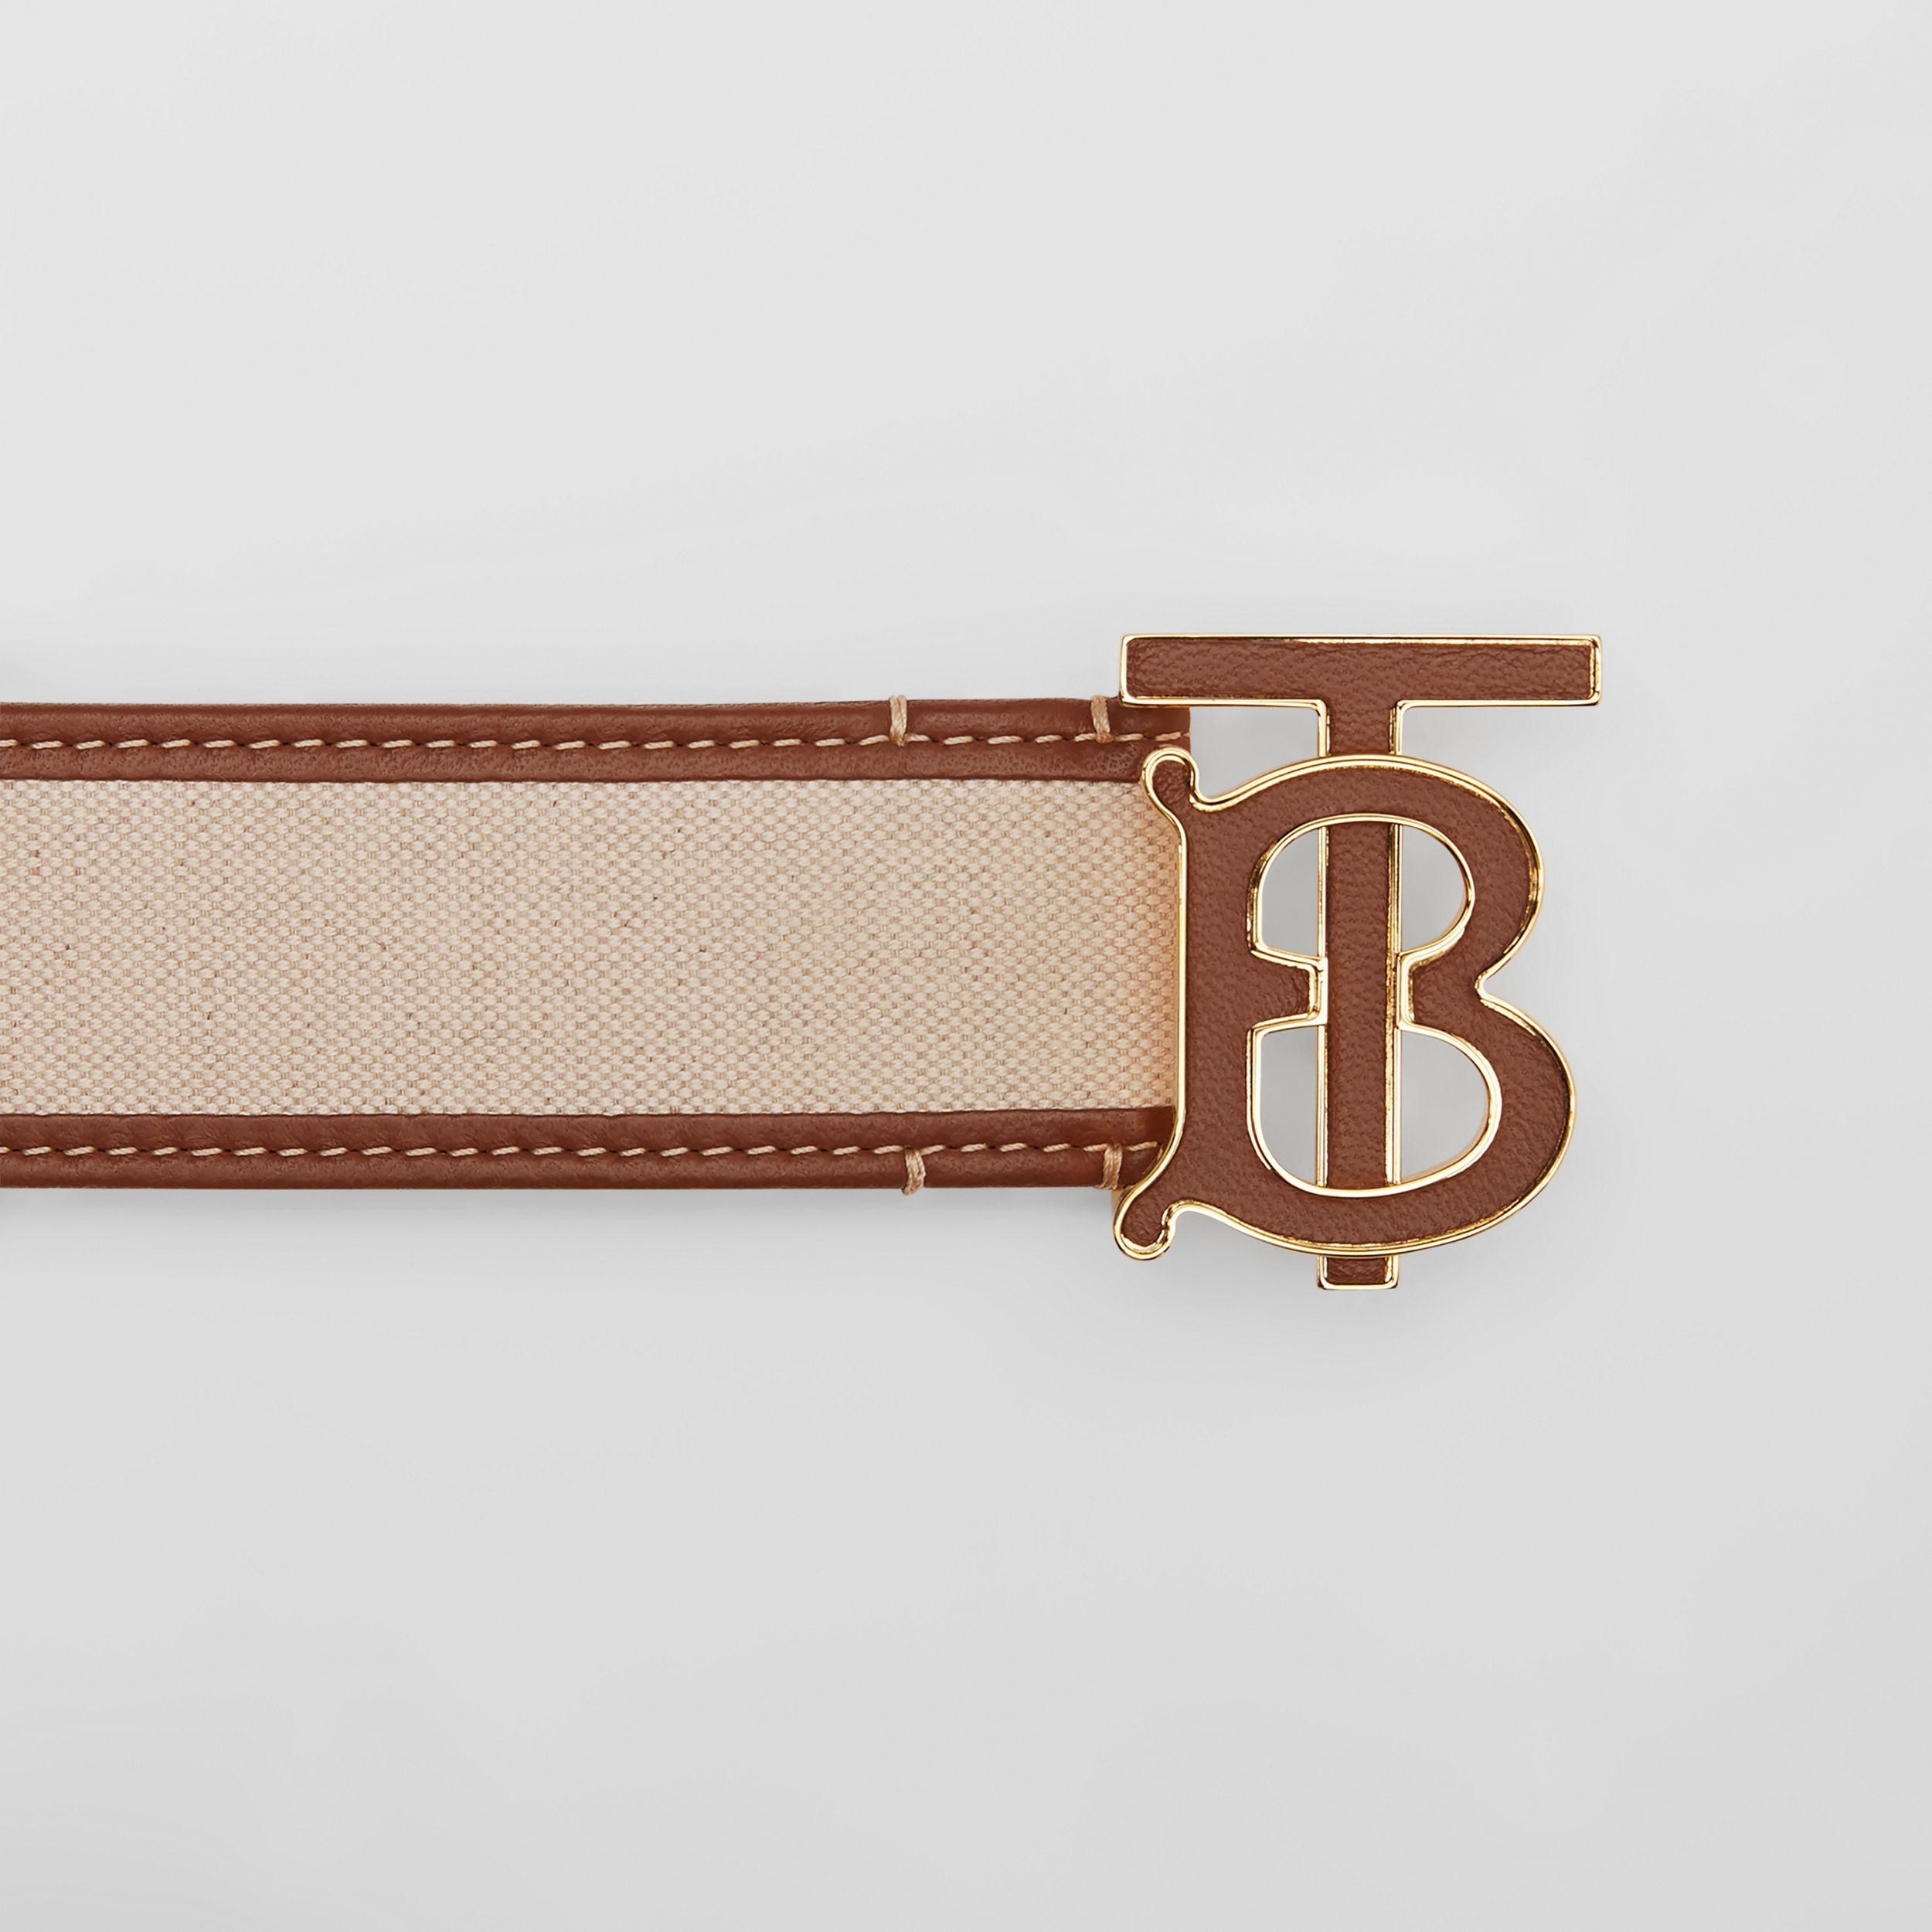 Monogram Motif Canvas and Leather Belt in Natural - Women | Burberry United Kingdom - 2